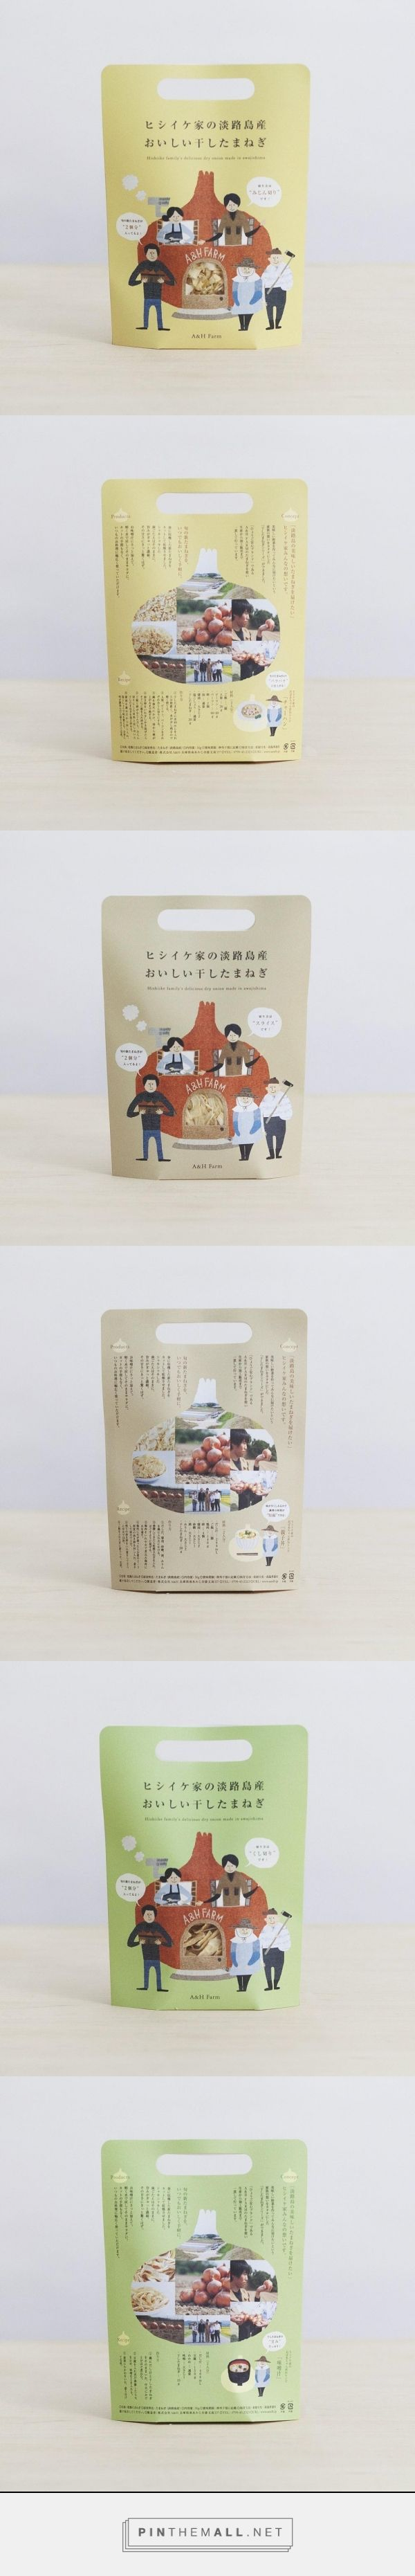 A&H Farm 淡路島でおいしい野菜をつくる家族。Who has a link for this packaging PD